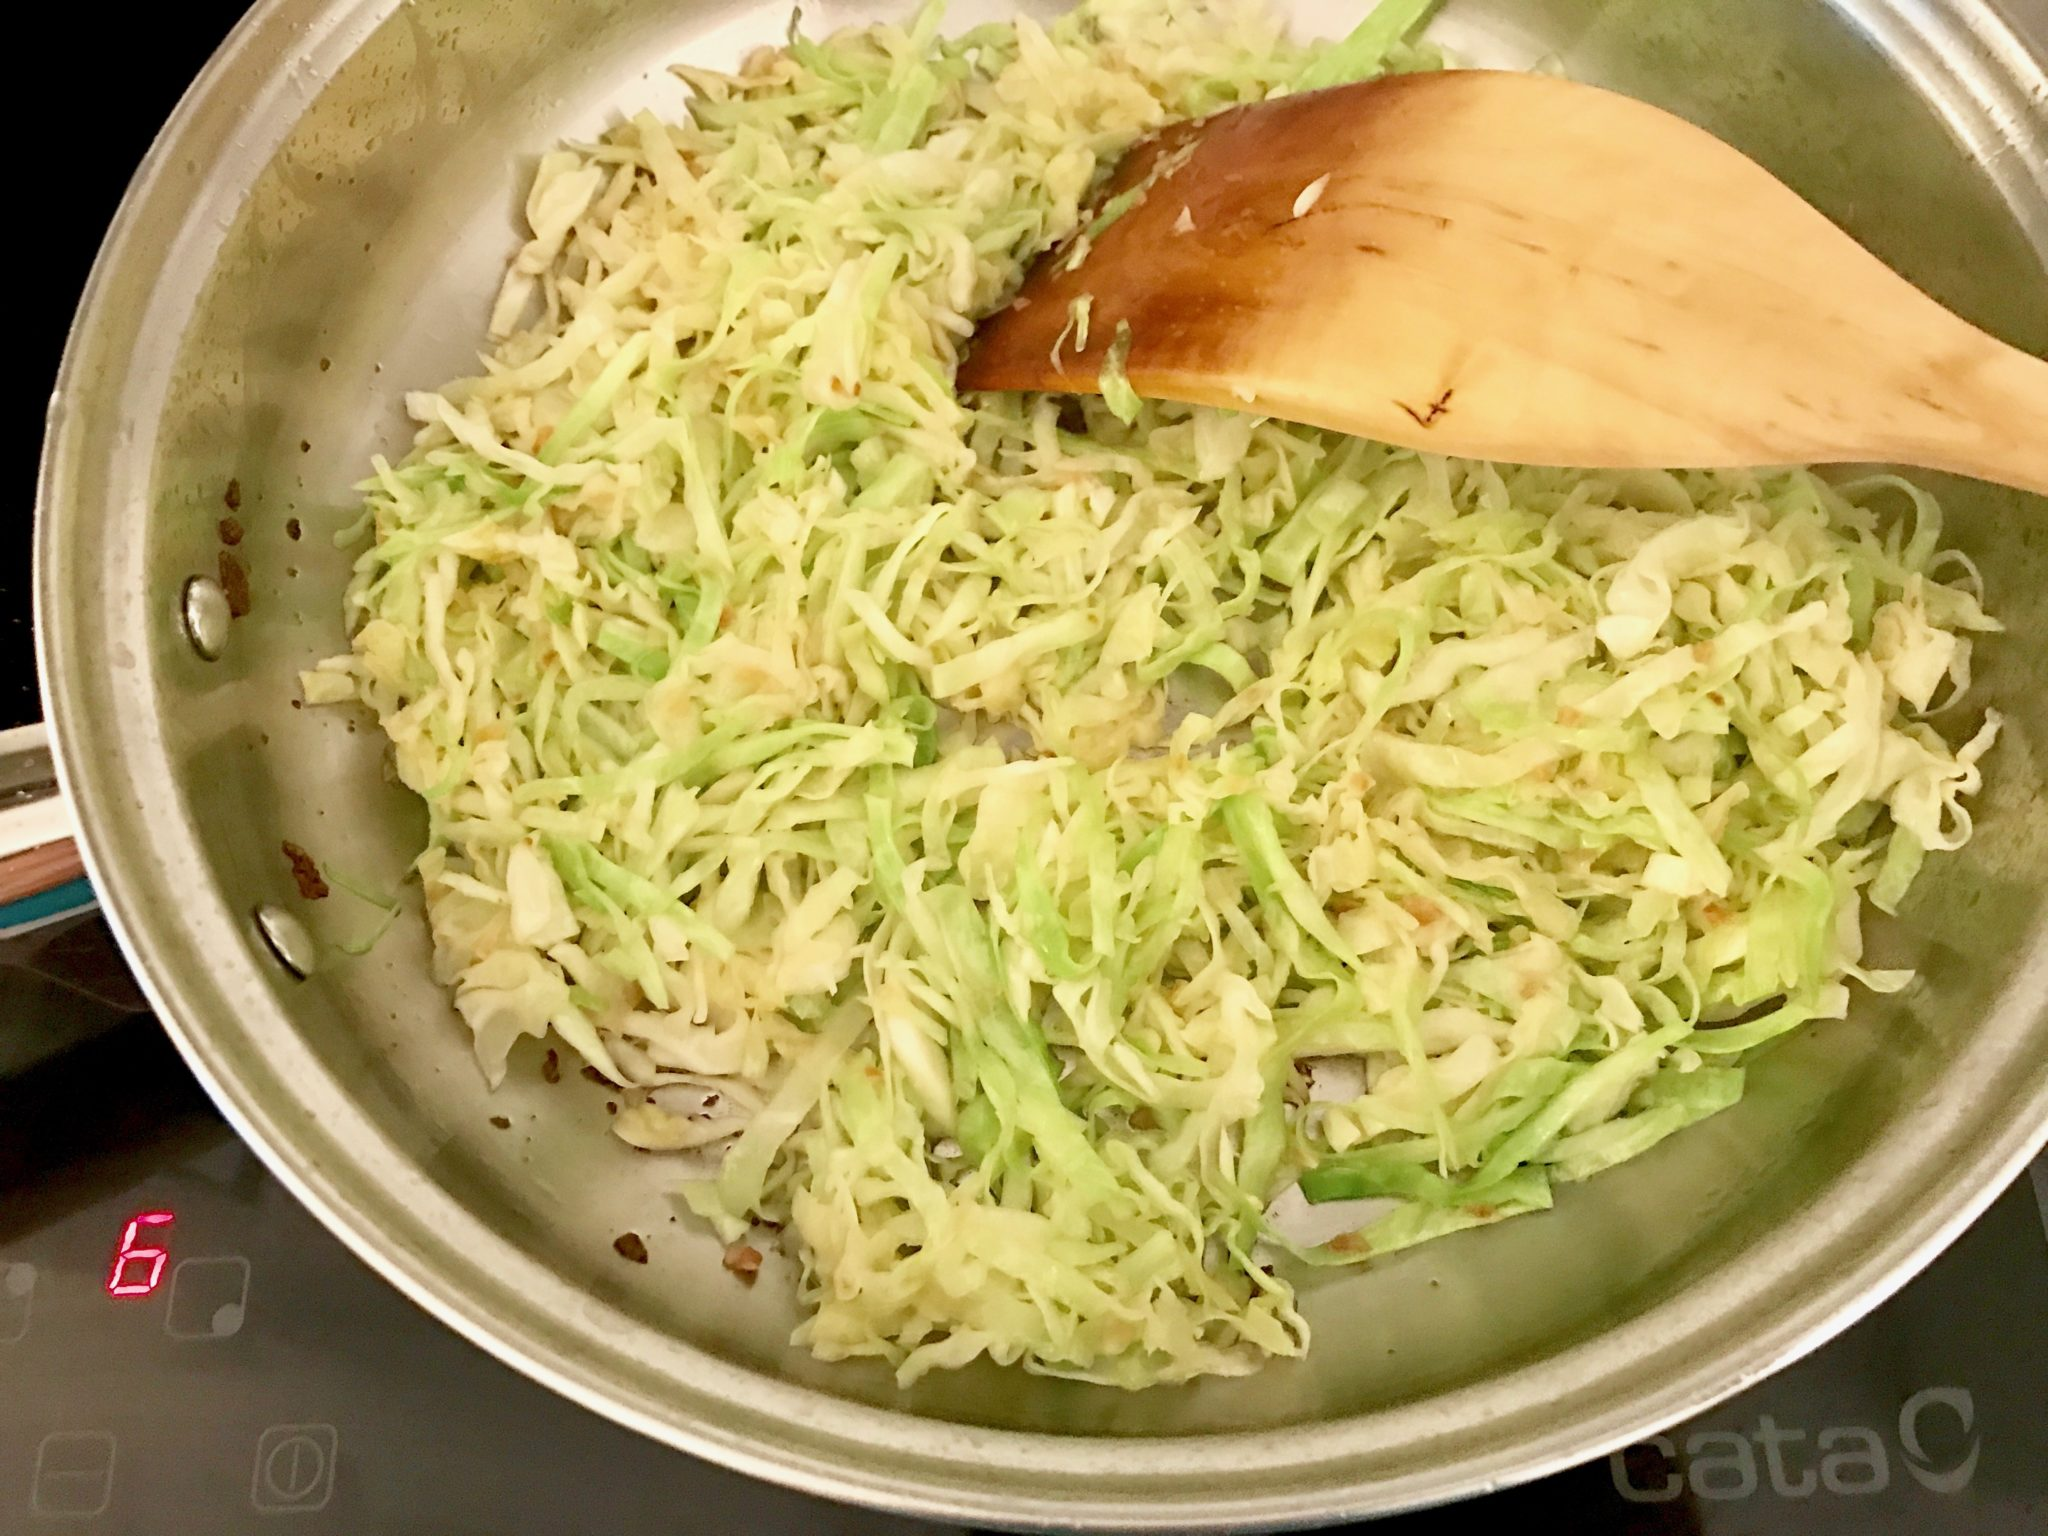 frying the cabbage